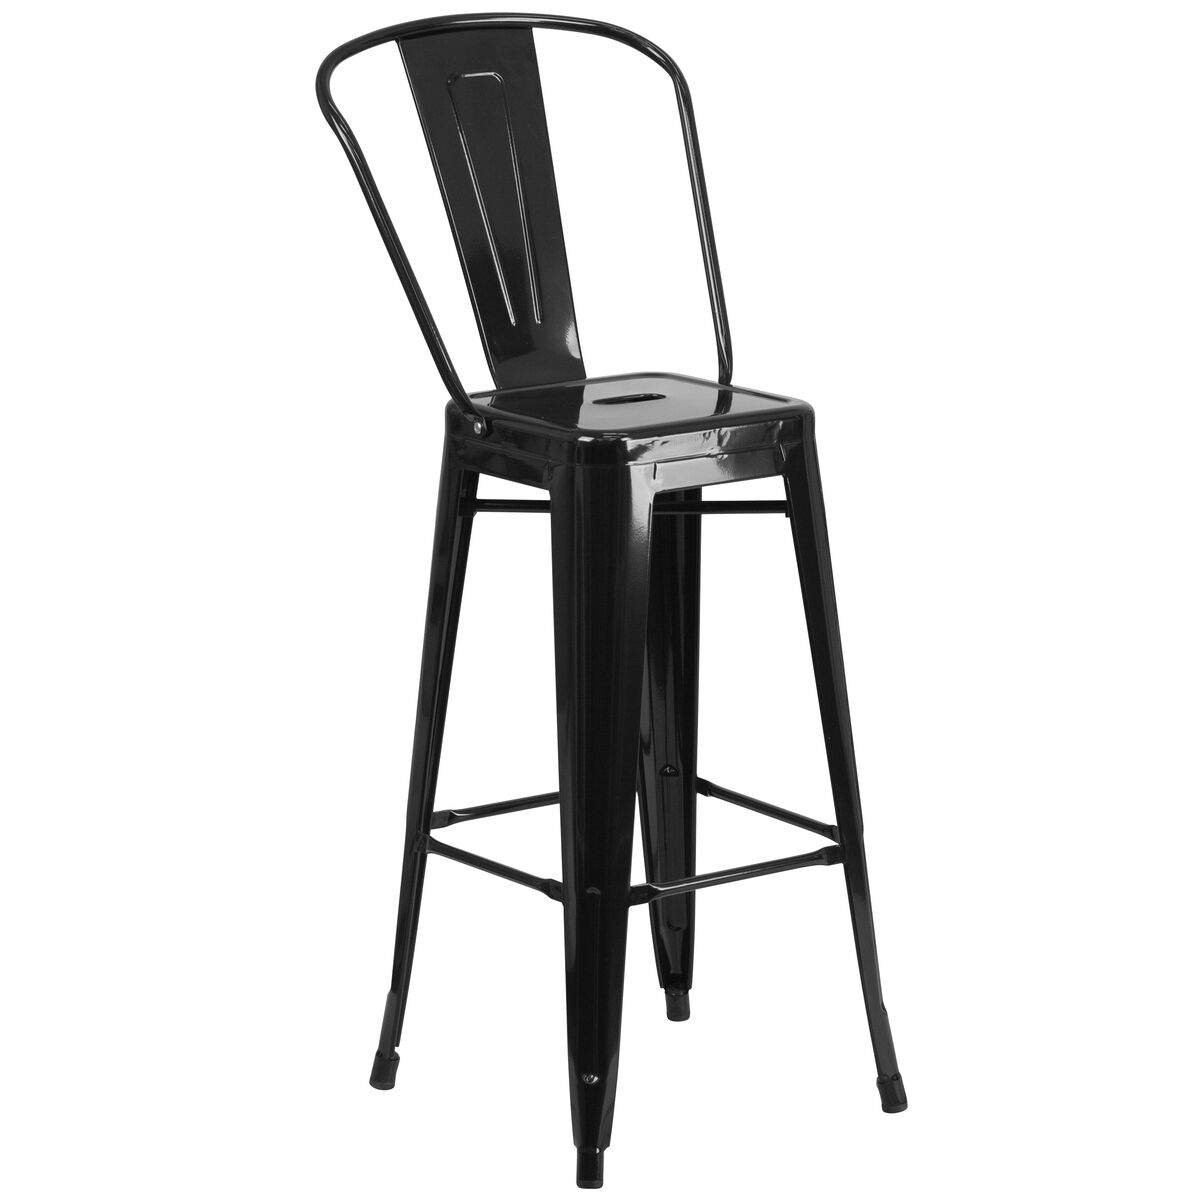 Our 30 high metal indoor outdoor barstool with back is on sale now